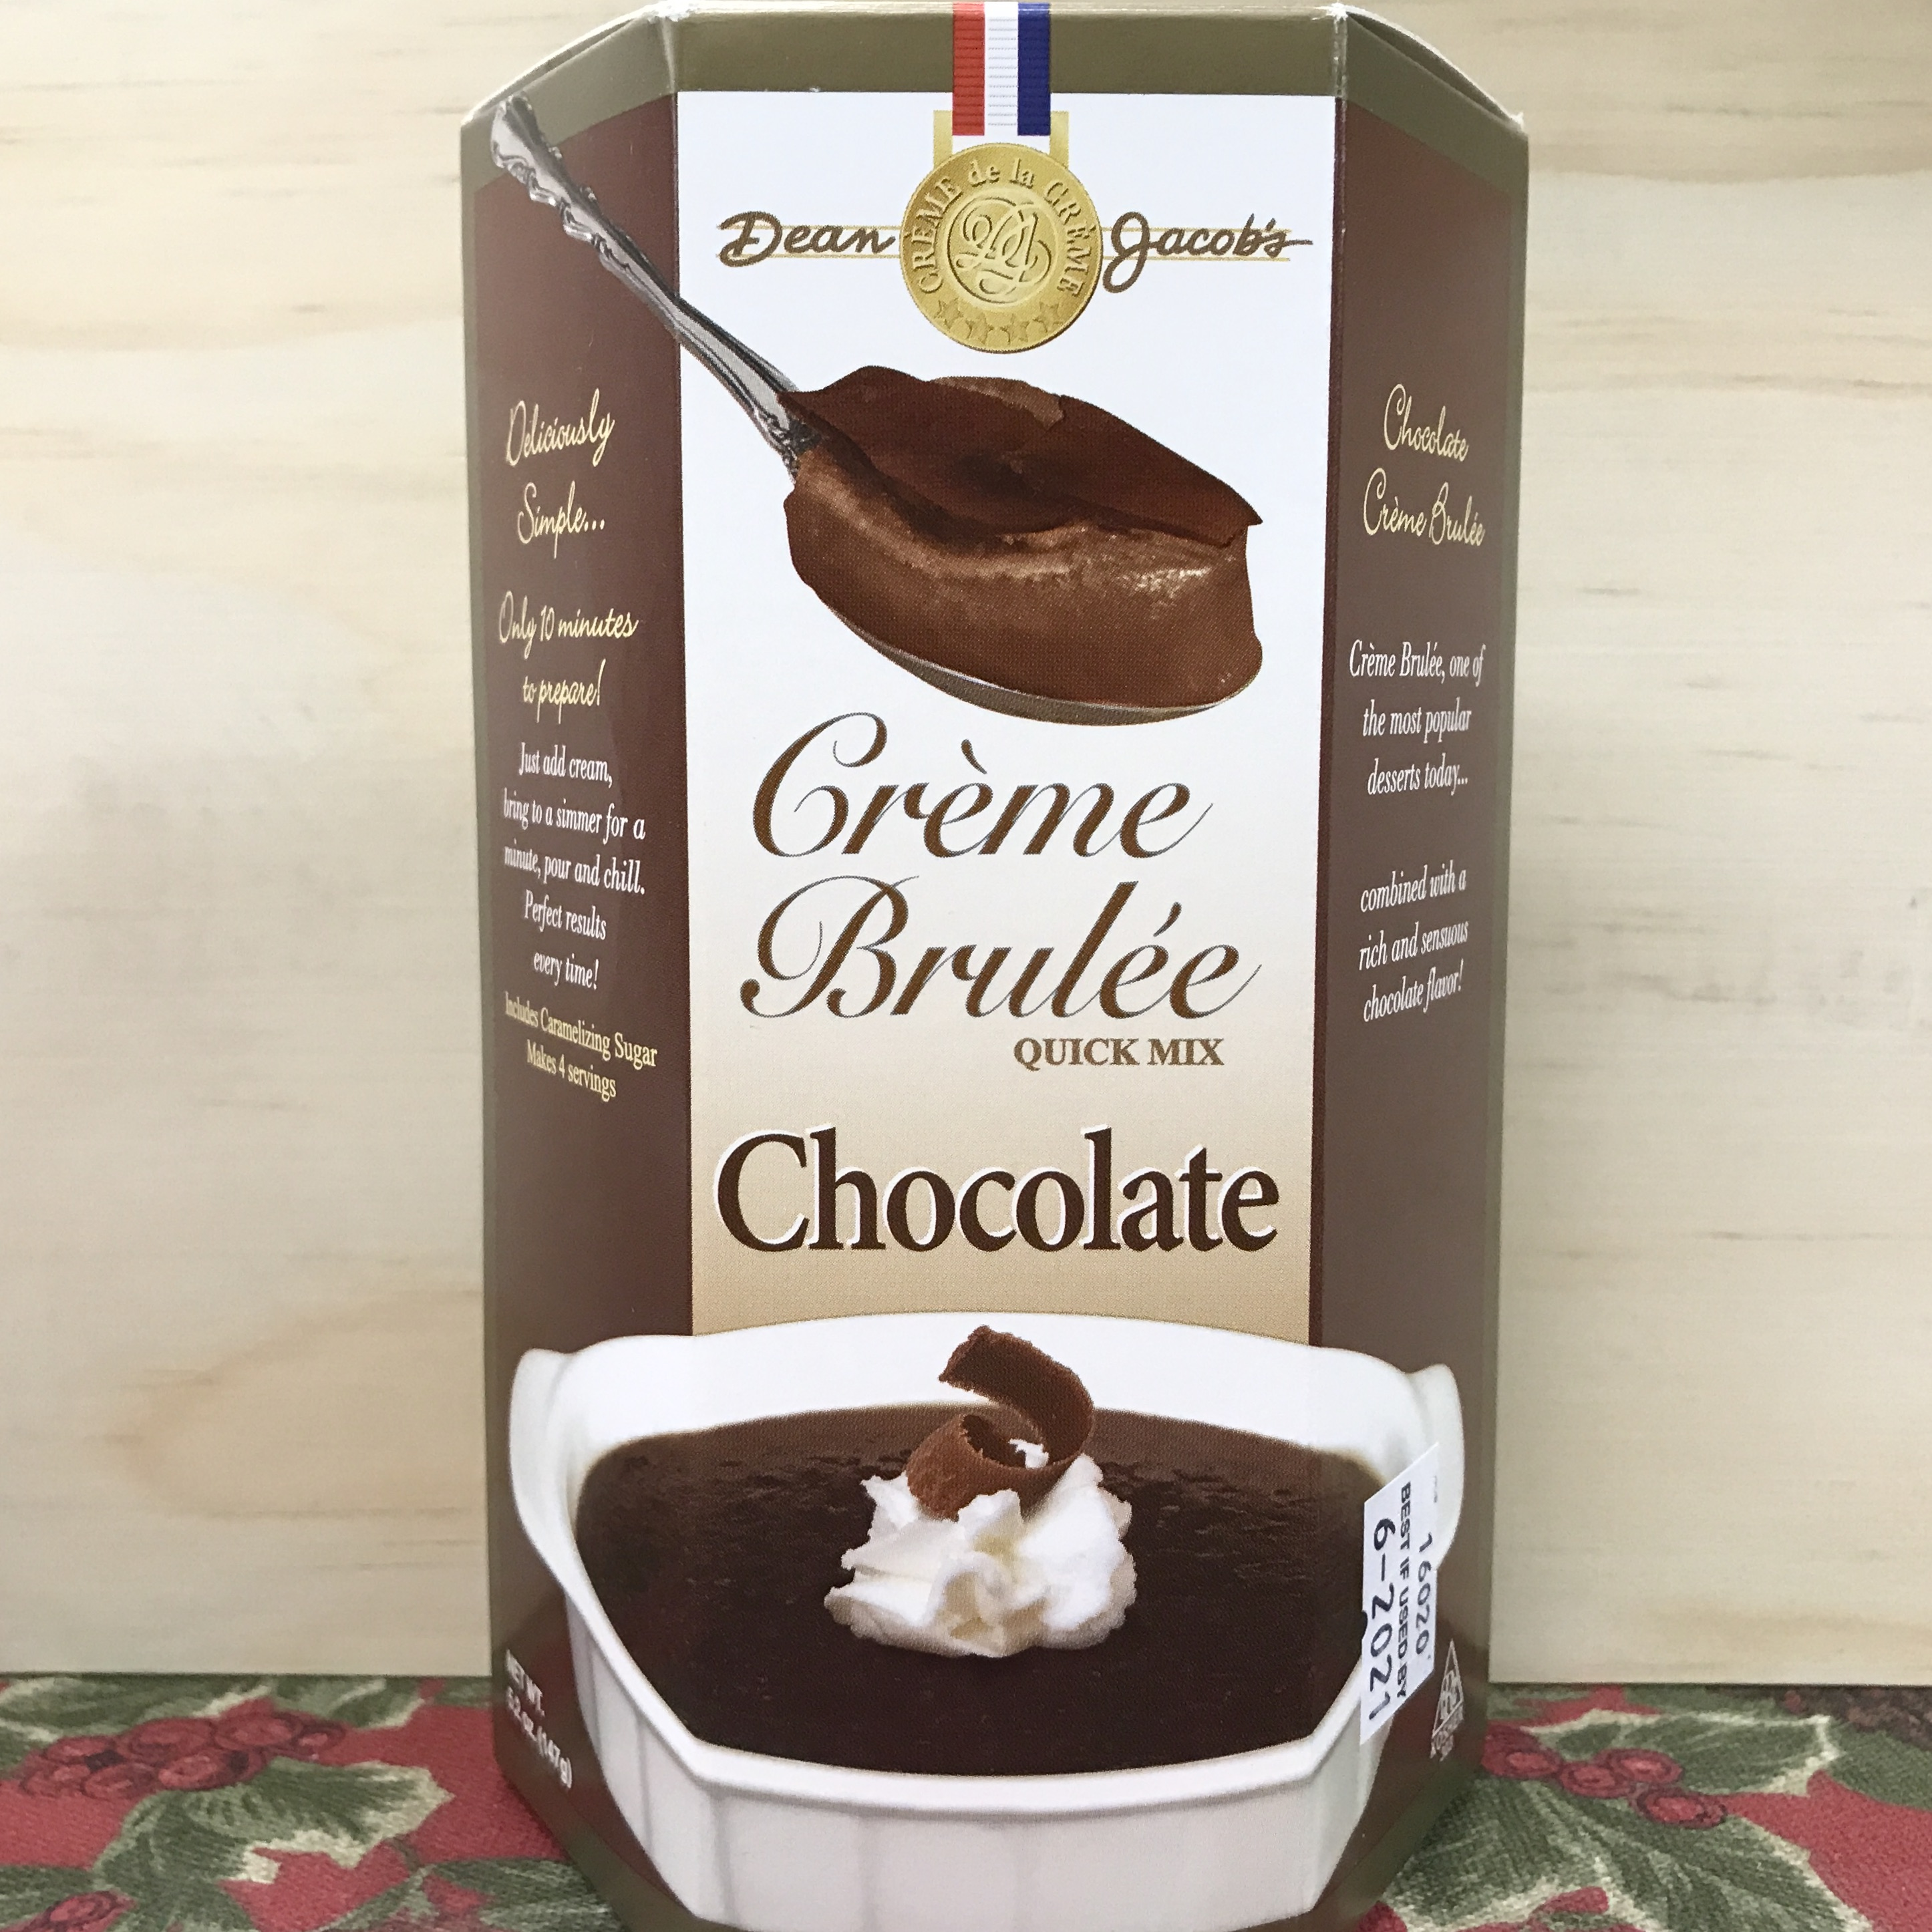 Dean Jacob's Chocolate Creme Brulee mix 5.2 oz